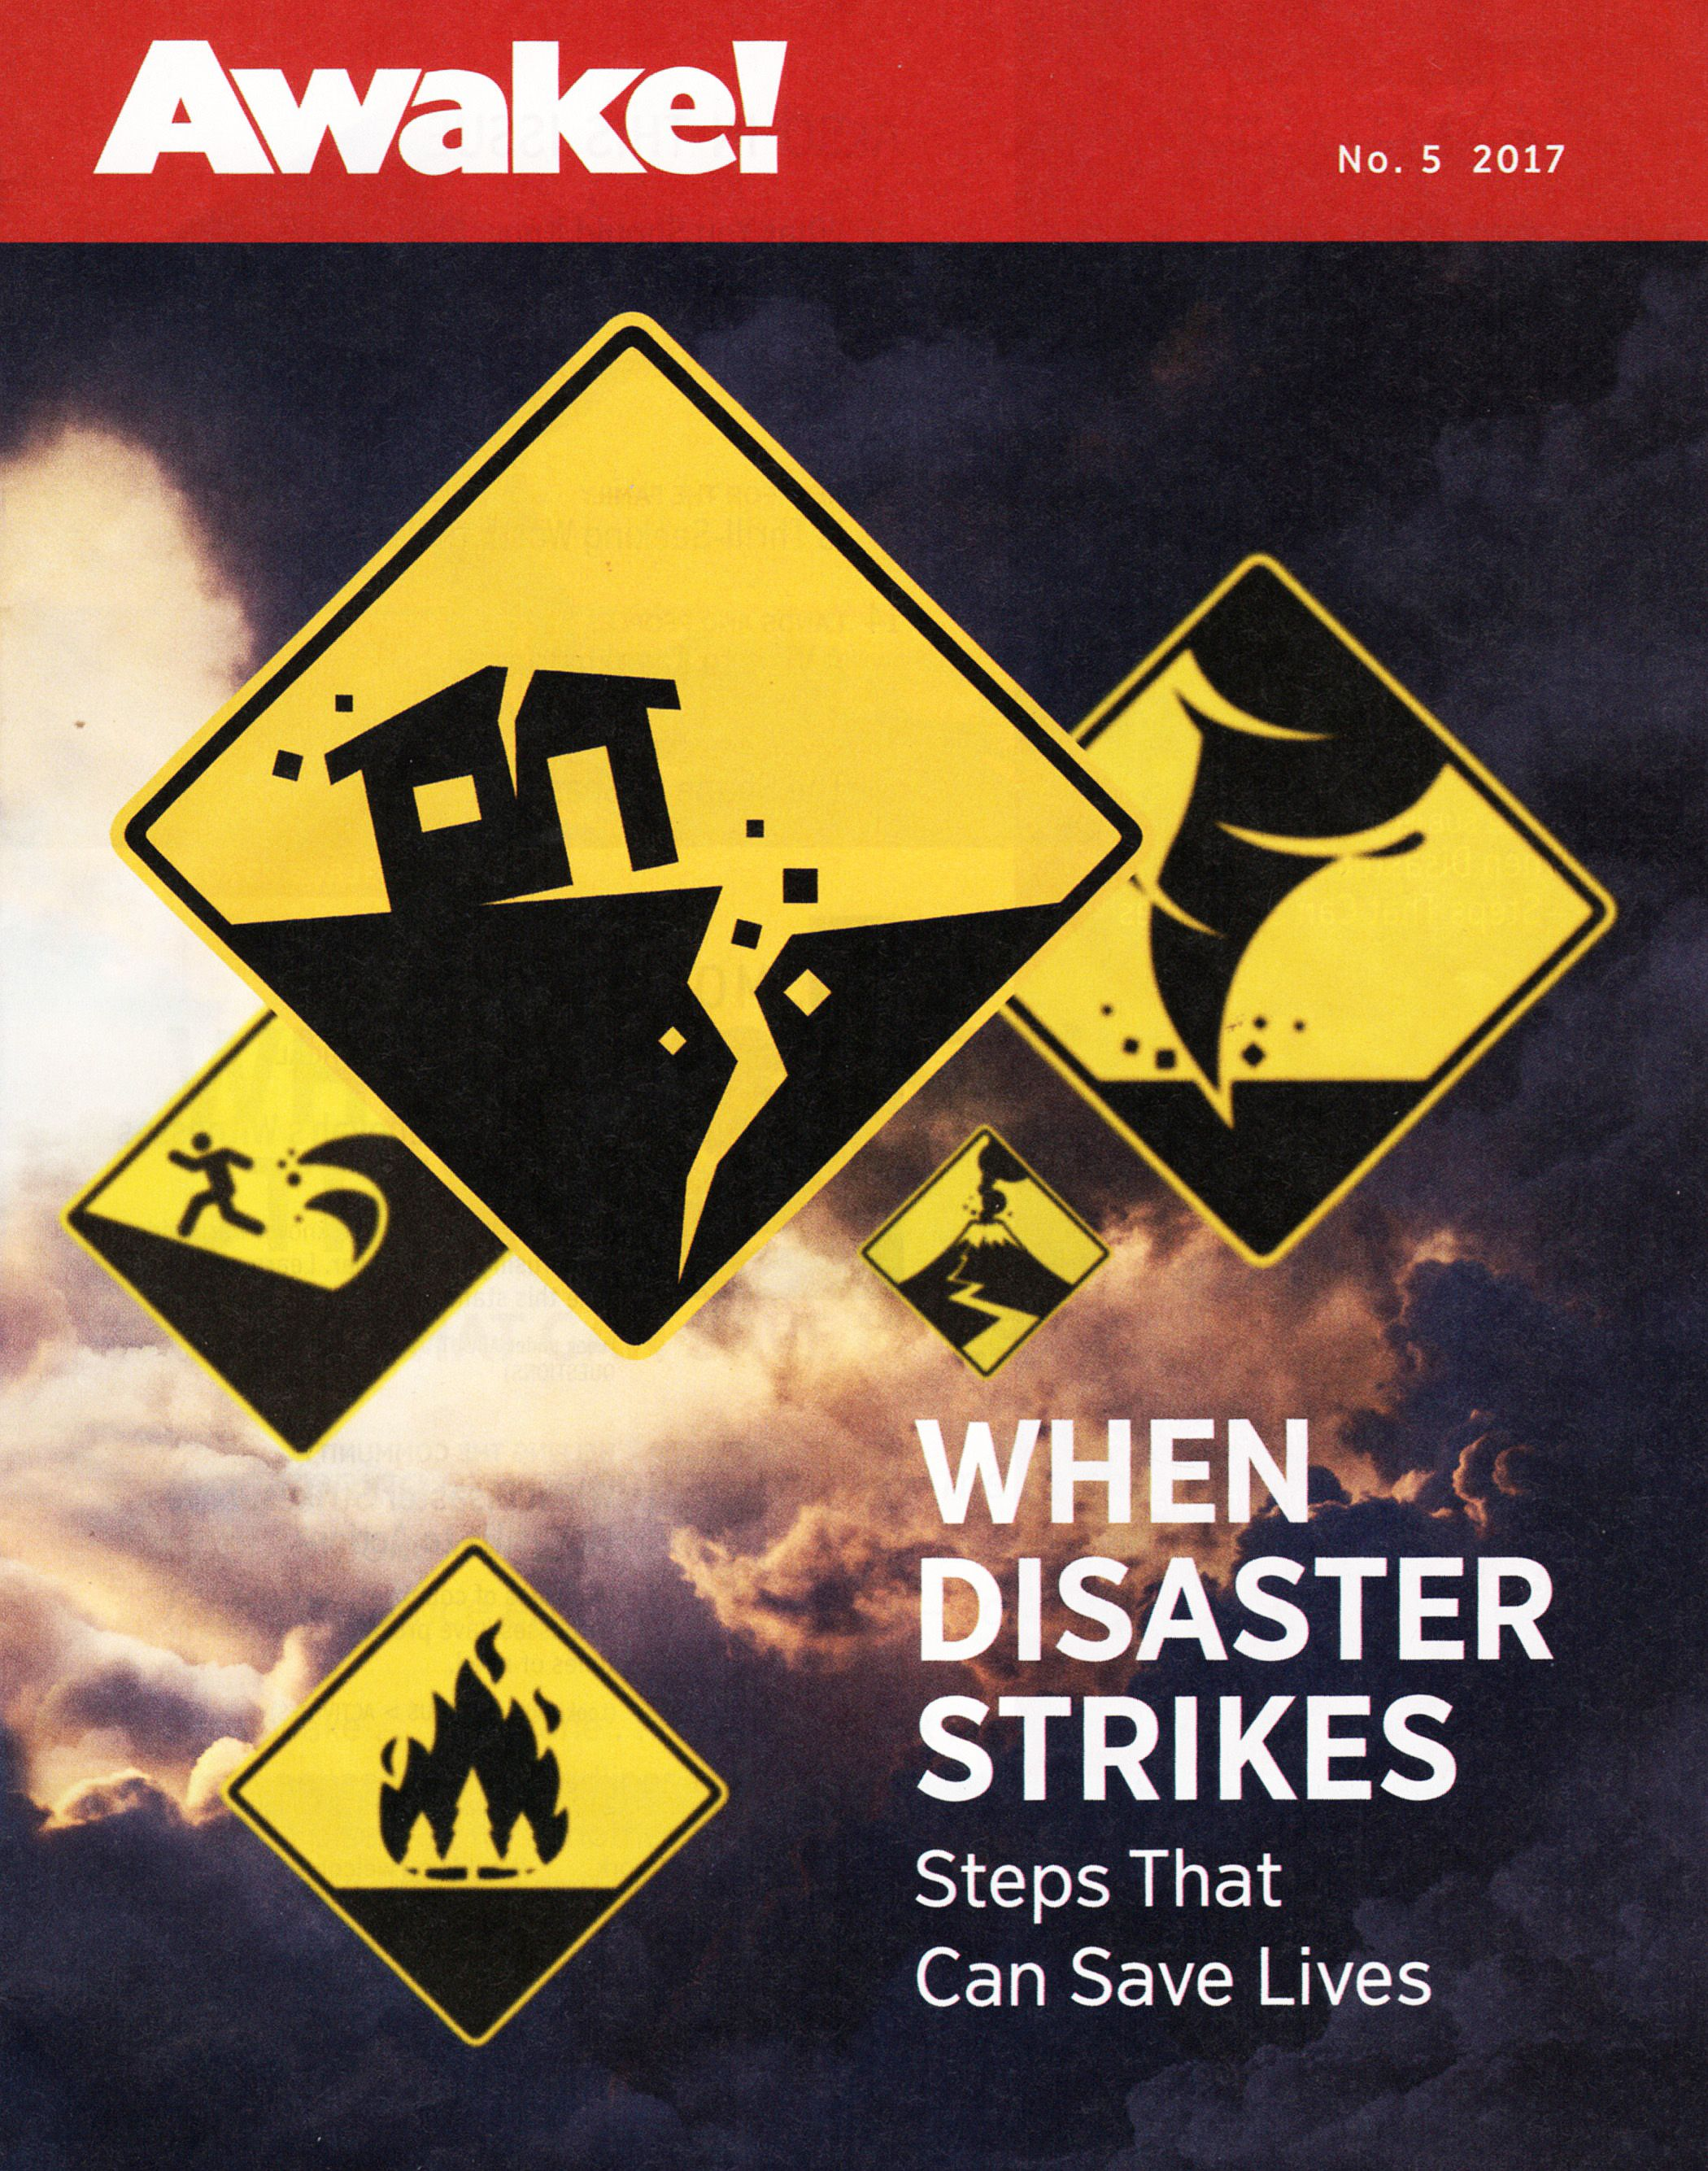 Various Disasters Portrayed In Road Warning Signs Disasters